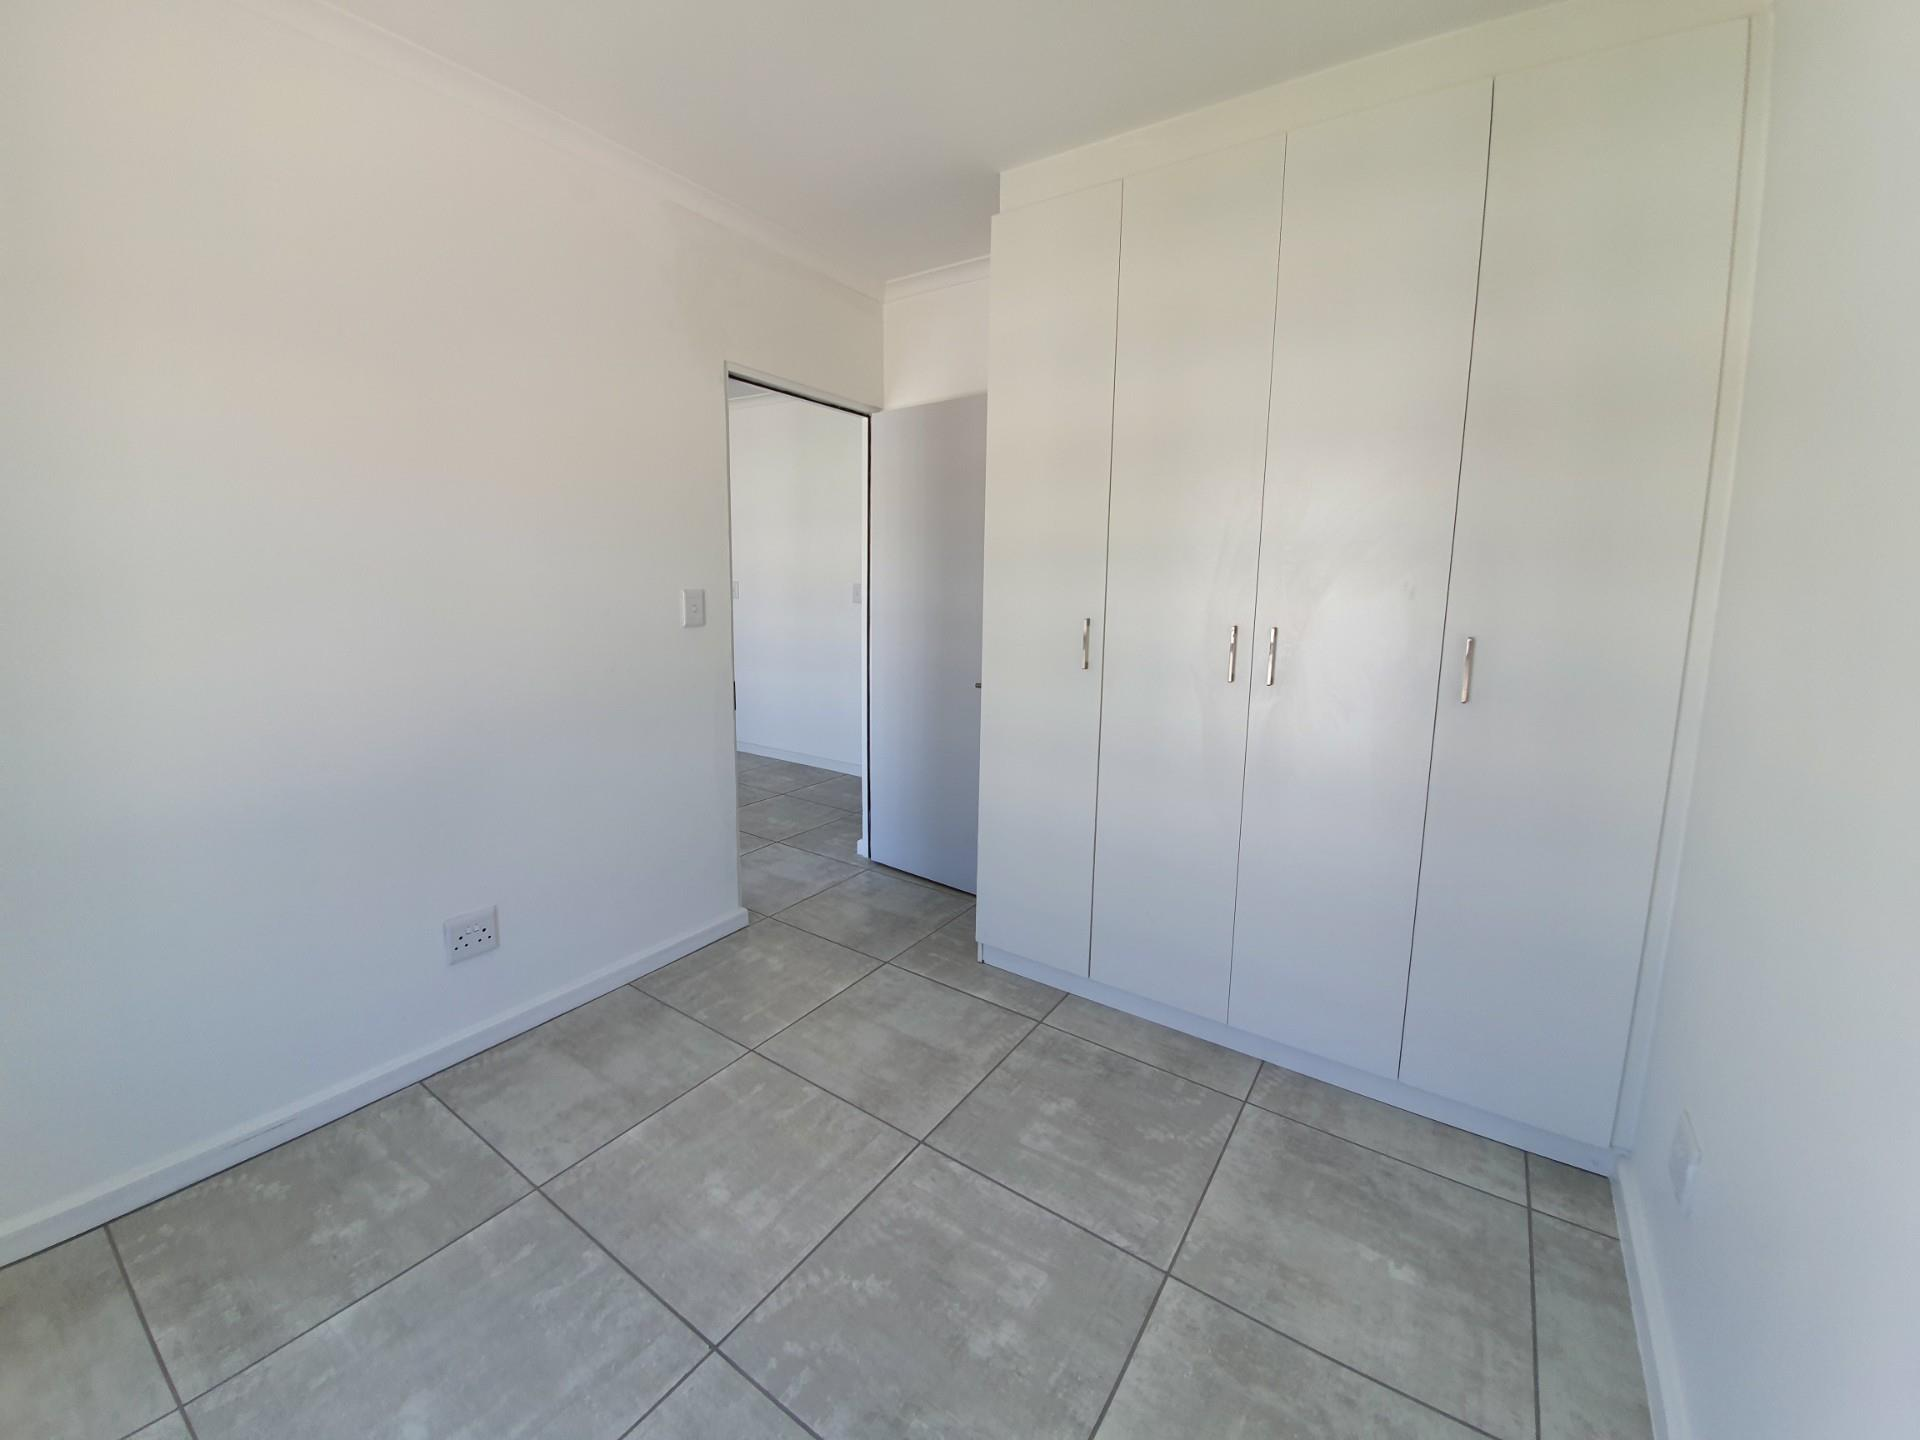 2 Bedroom Apartment / Flat To Rent in Aan de Wijnlanden